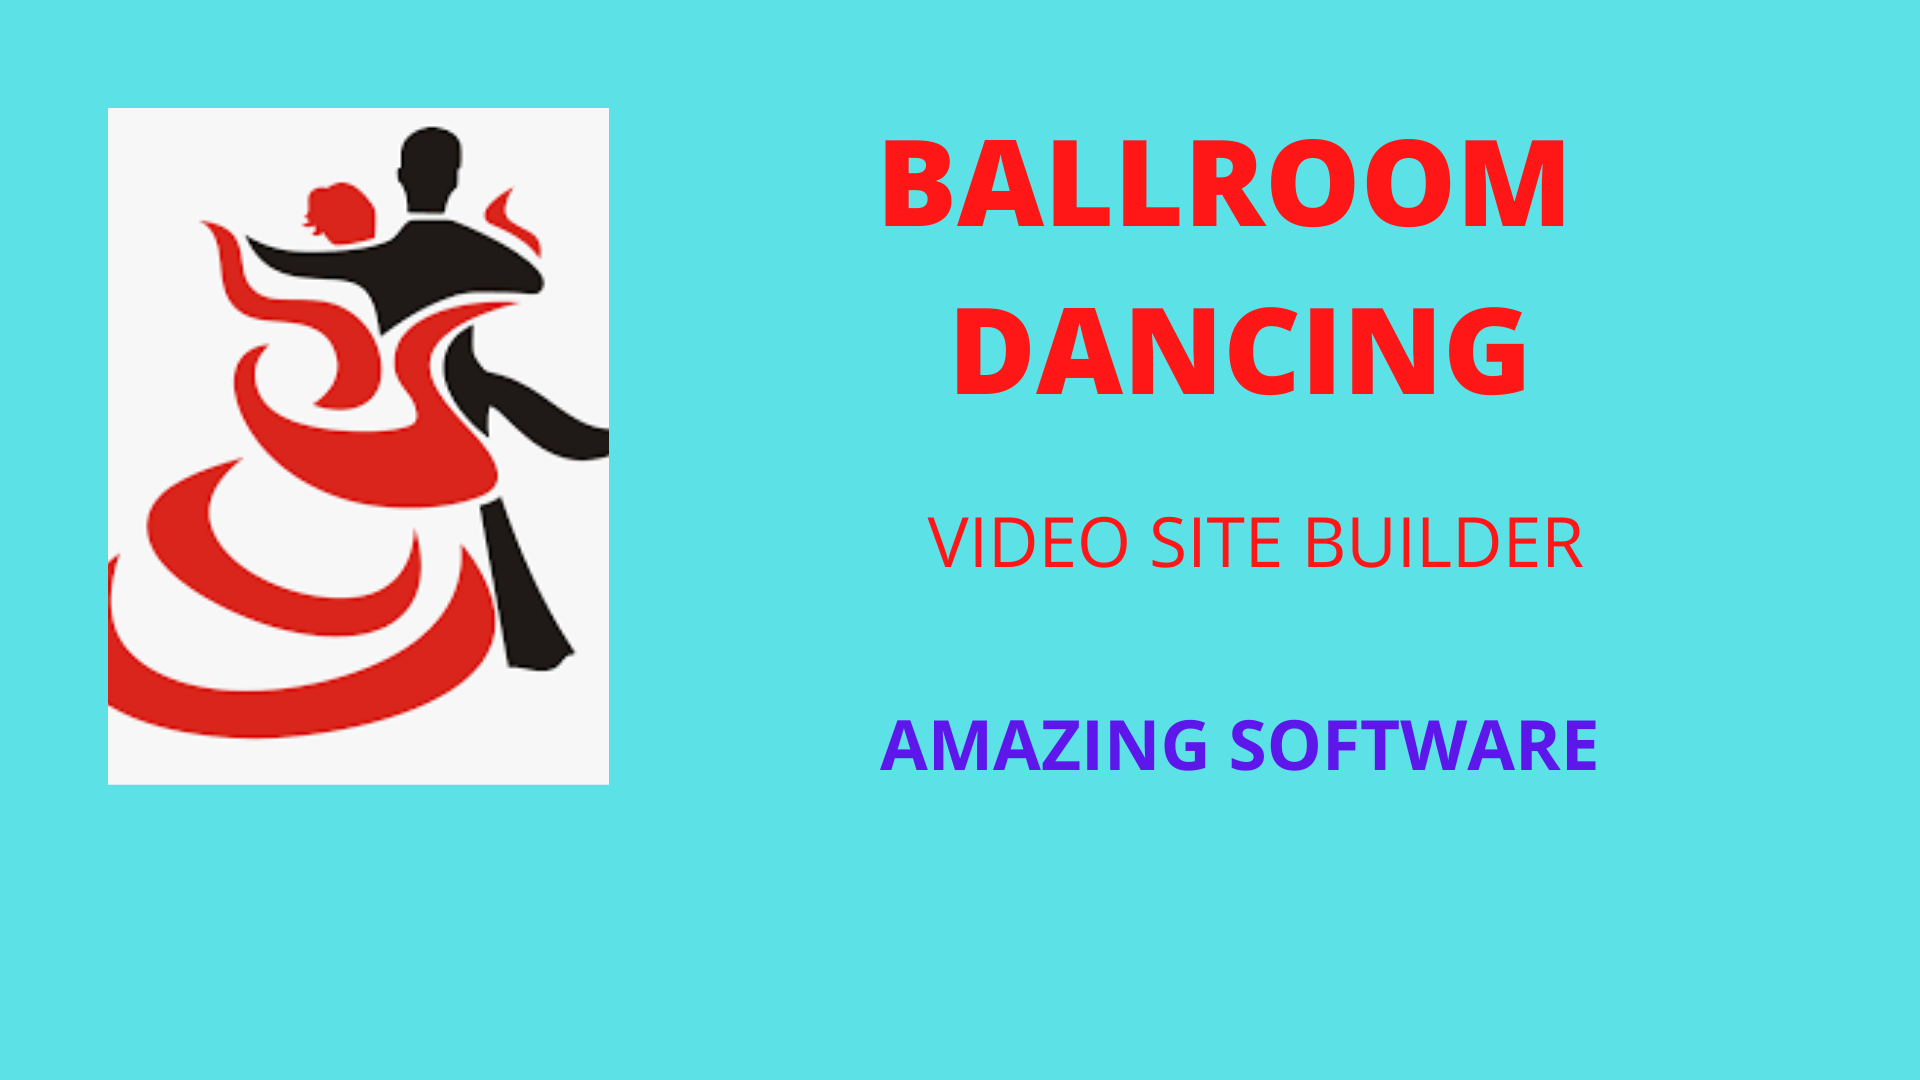 Good software for making own video site about Ballroom Dancing.